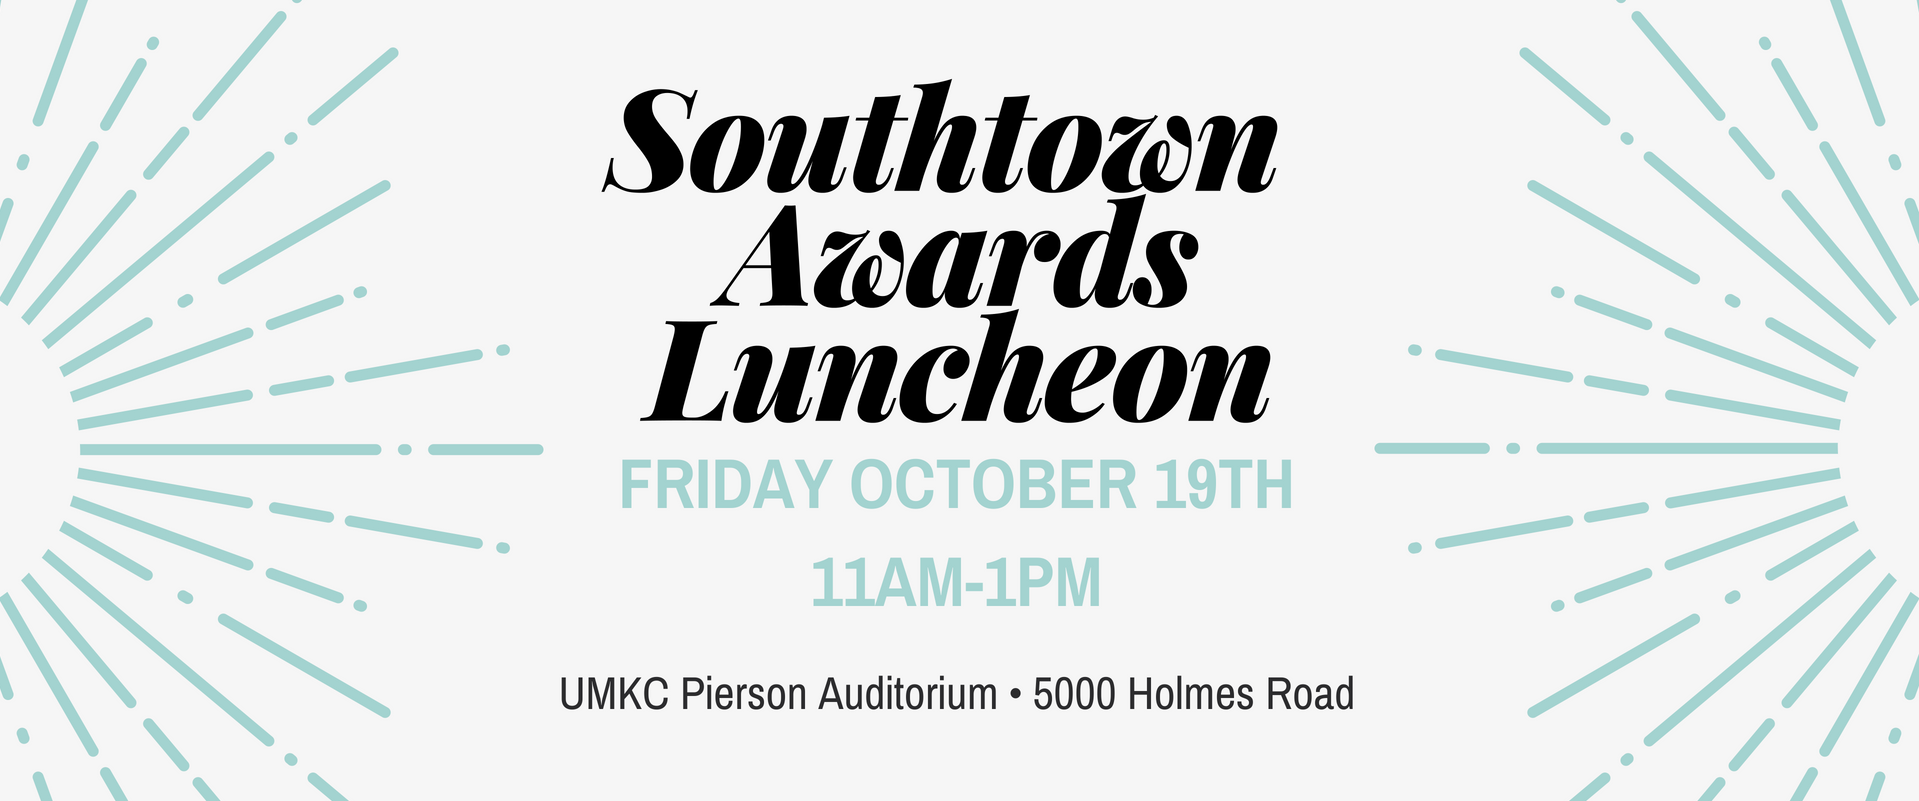 2018-Southtown-Awards-Luncheon